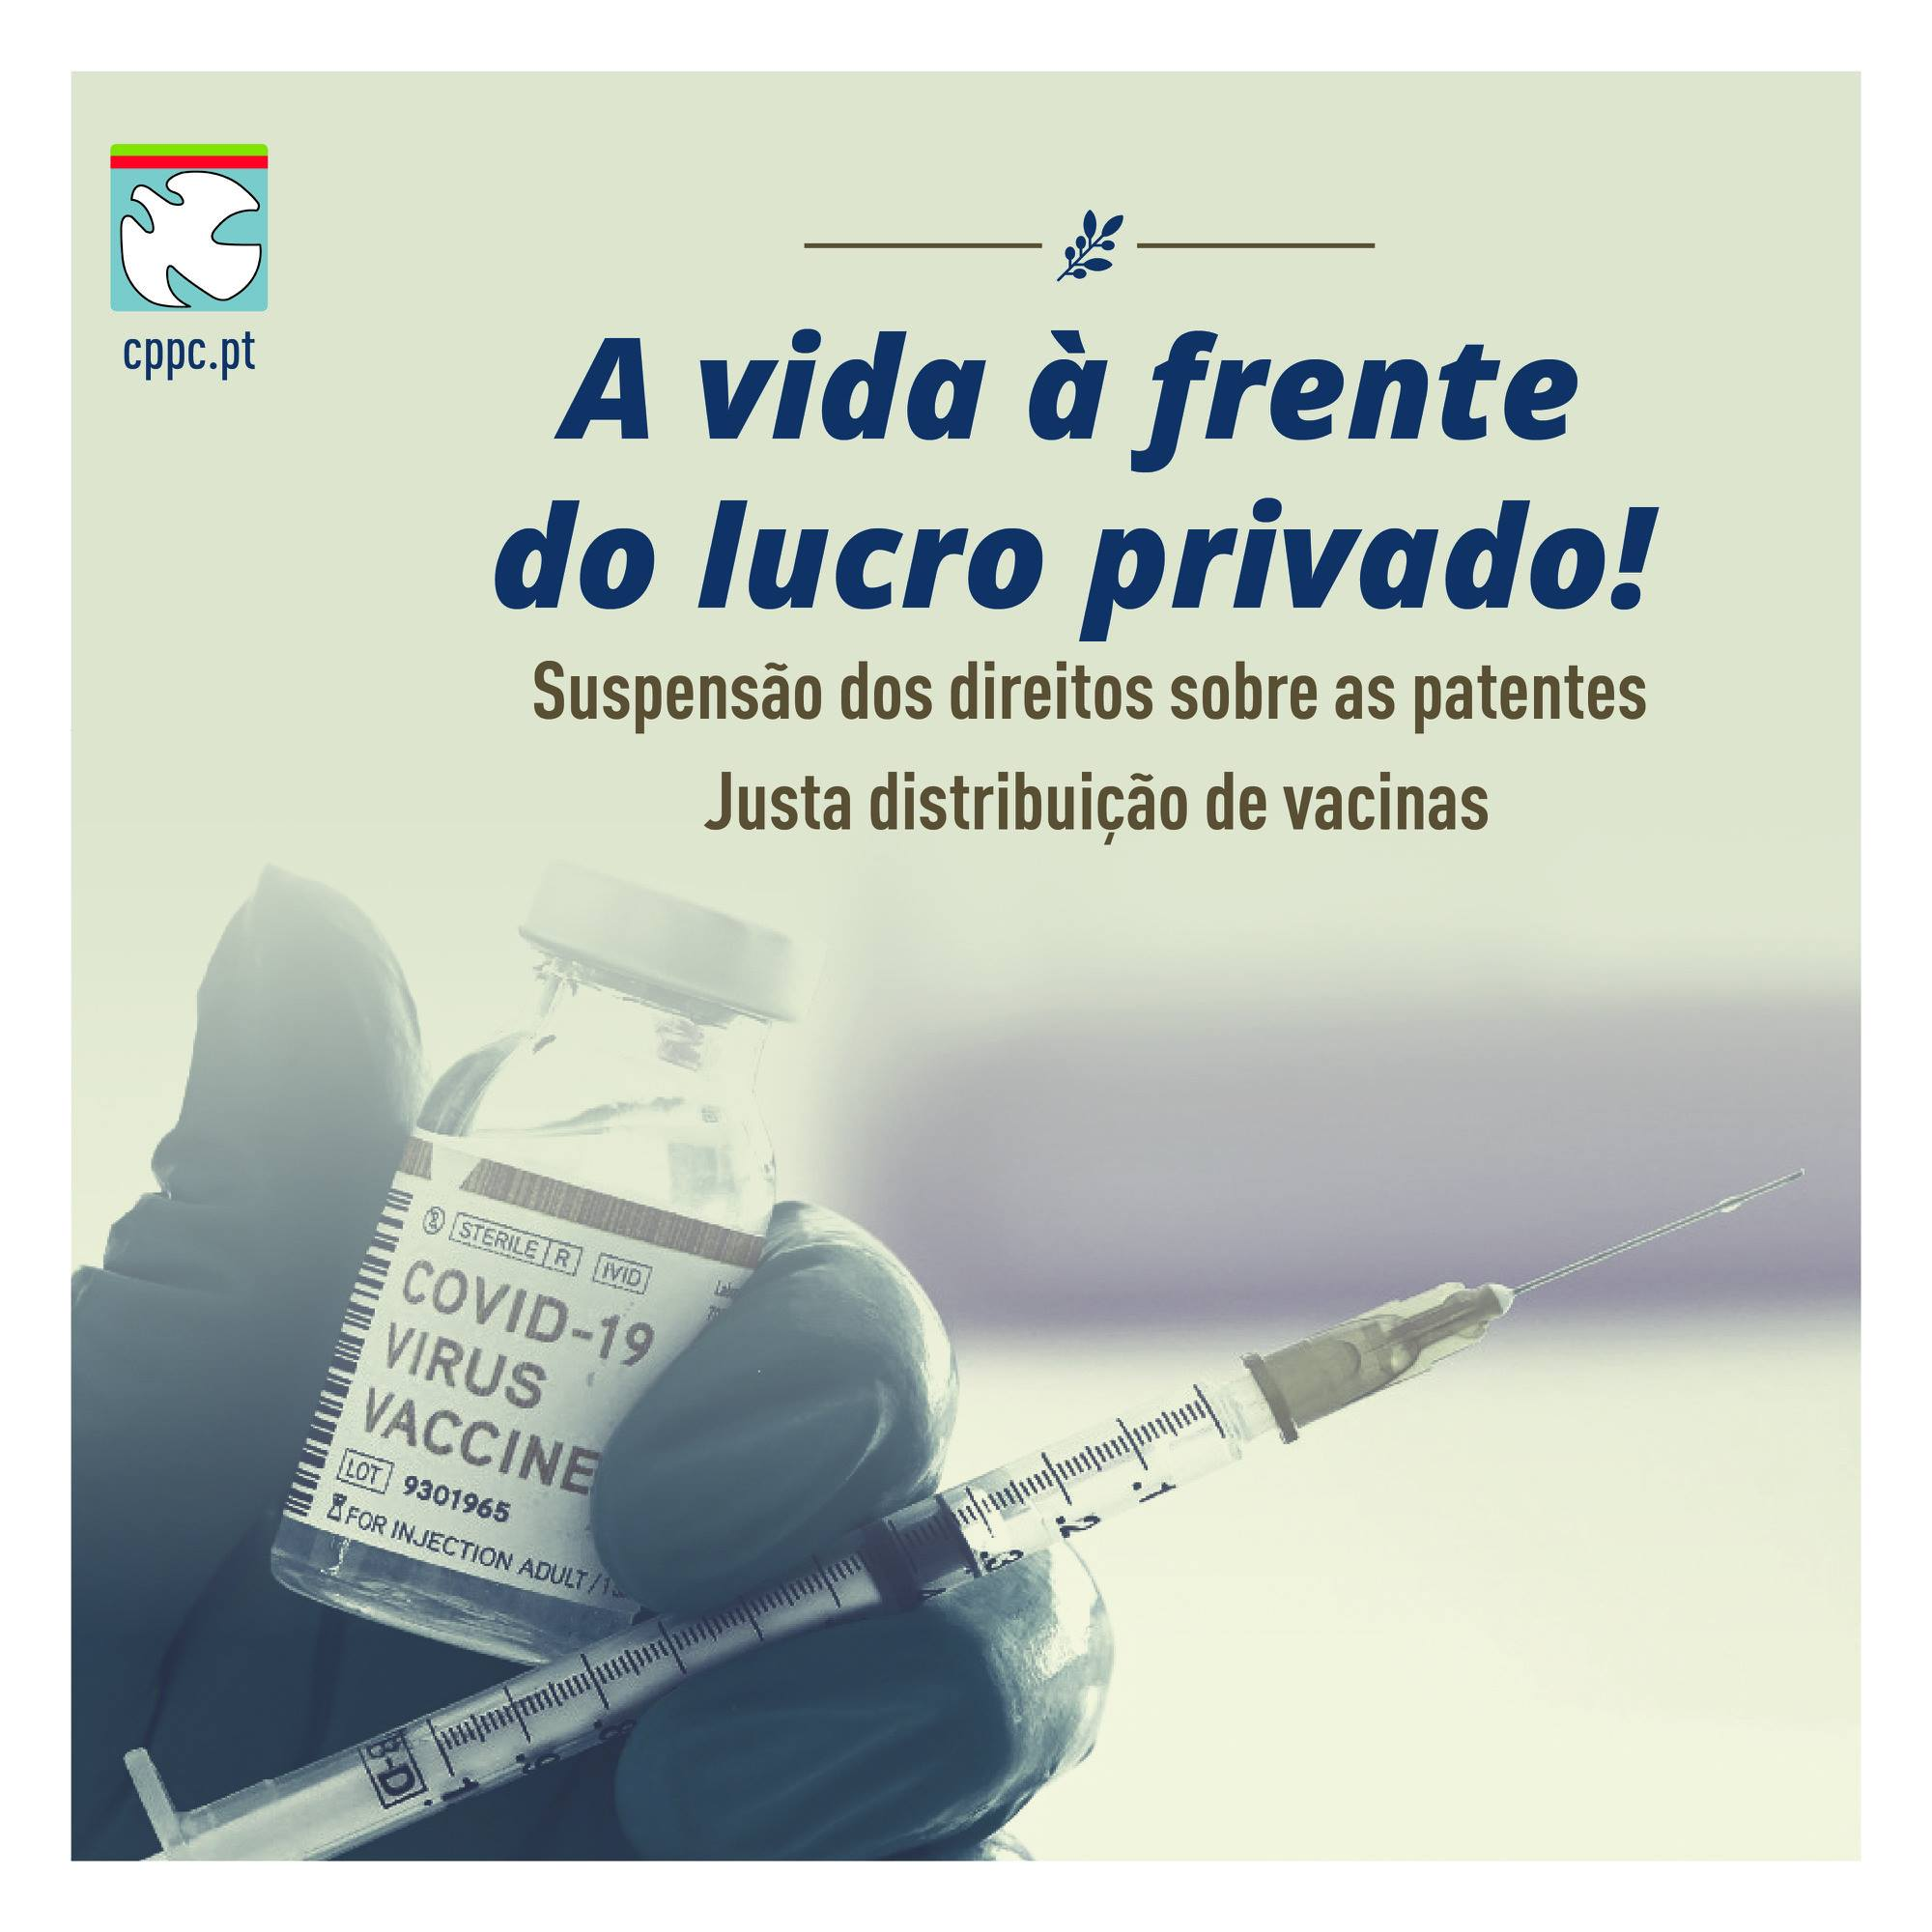 a vida a frente do lucro privado 1 20210317 1387069922